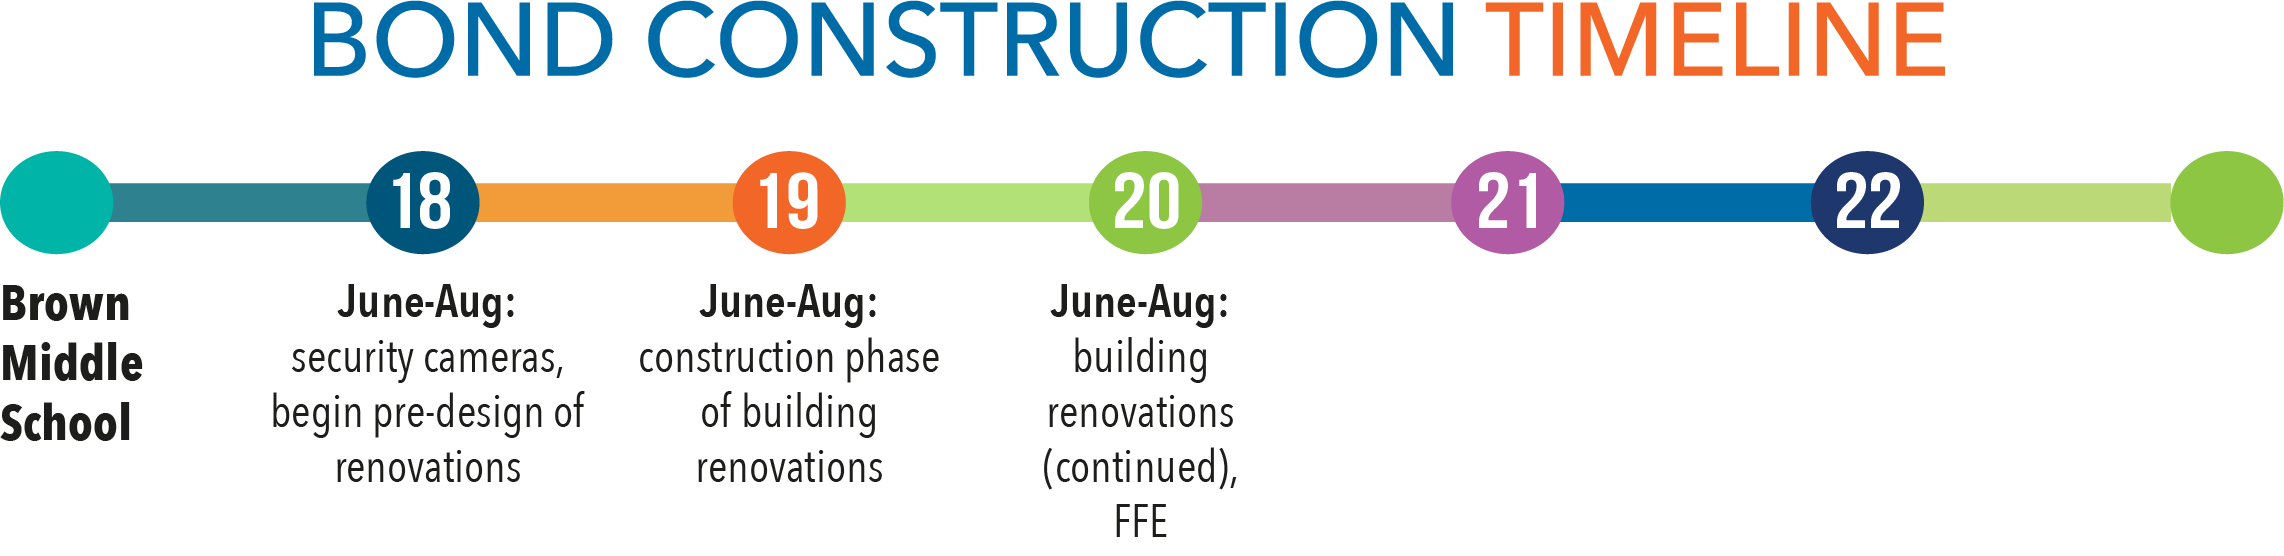 Brown construction timeline